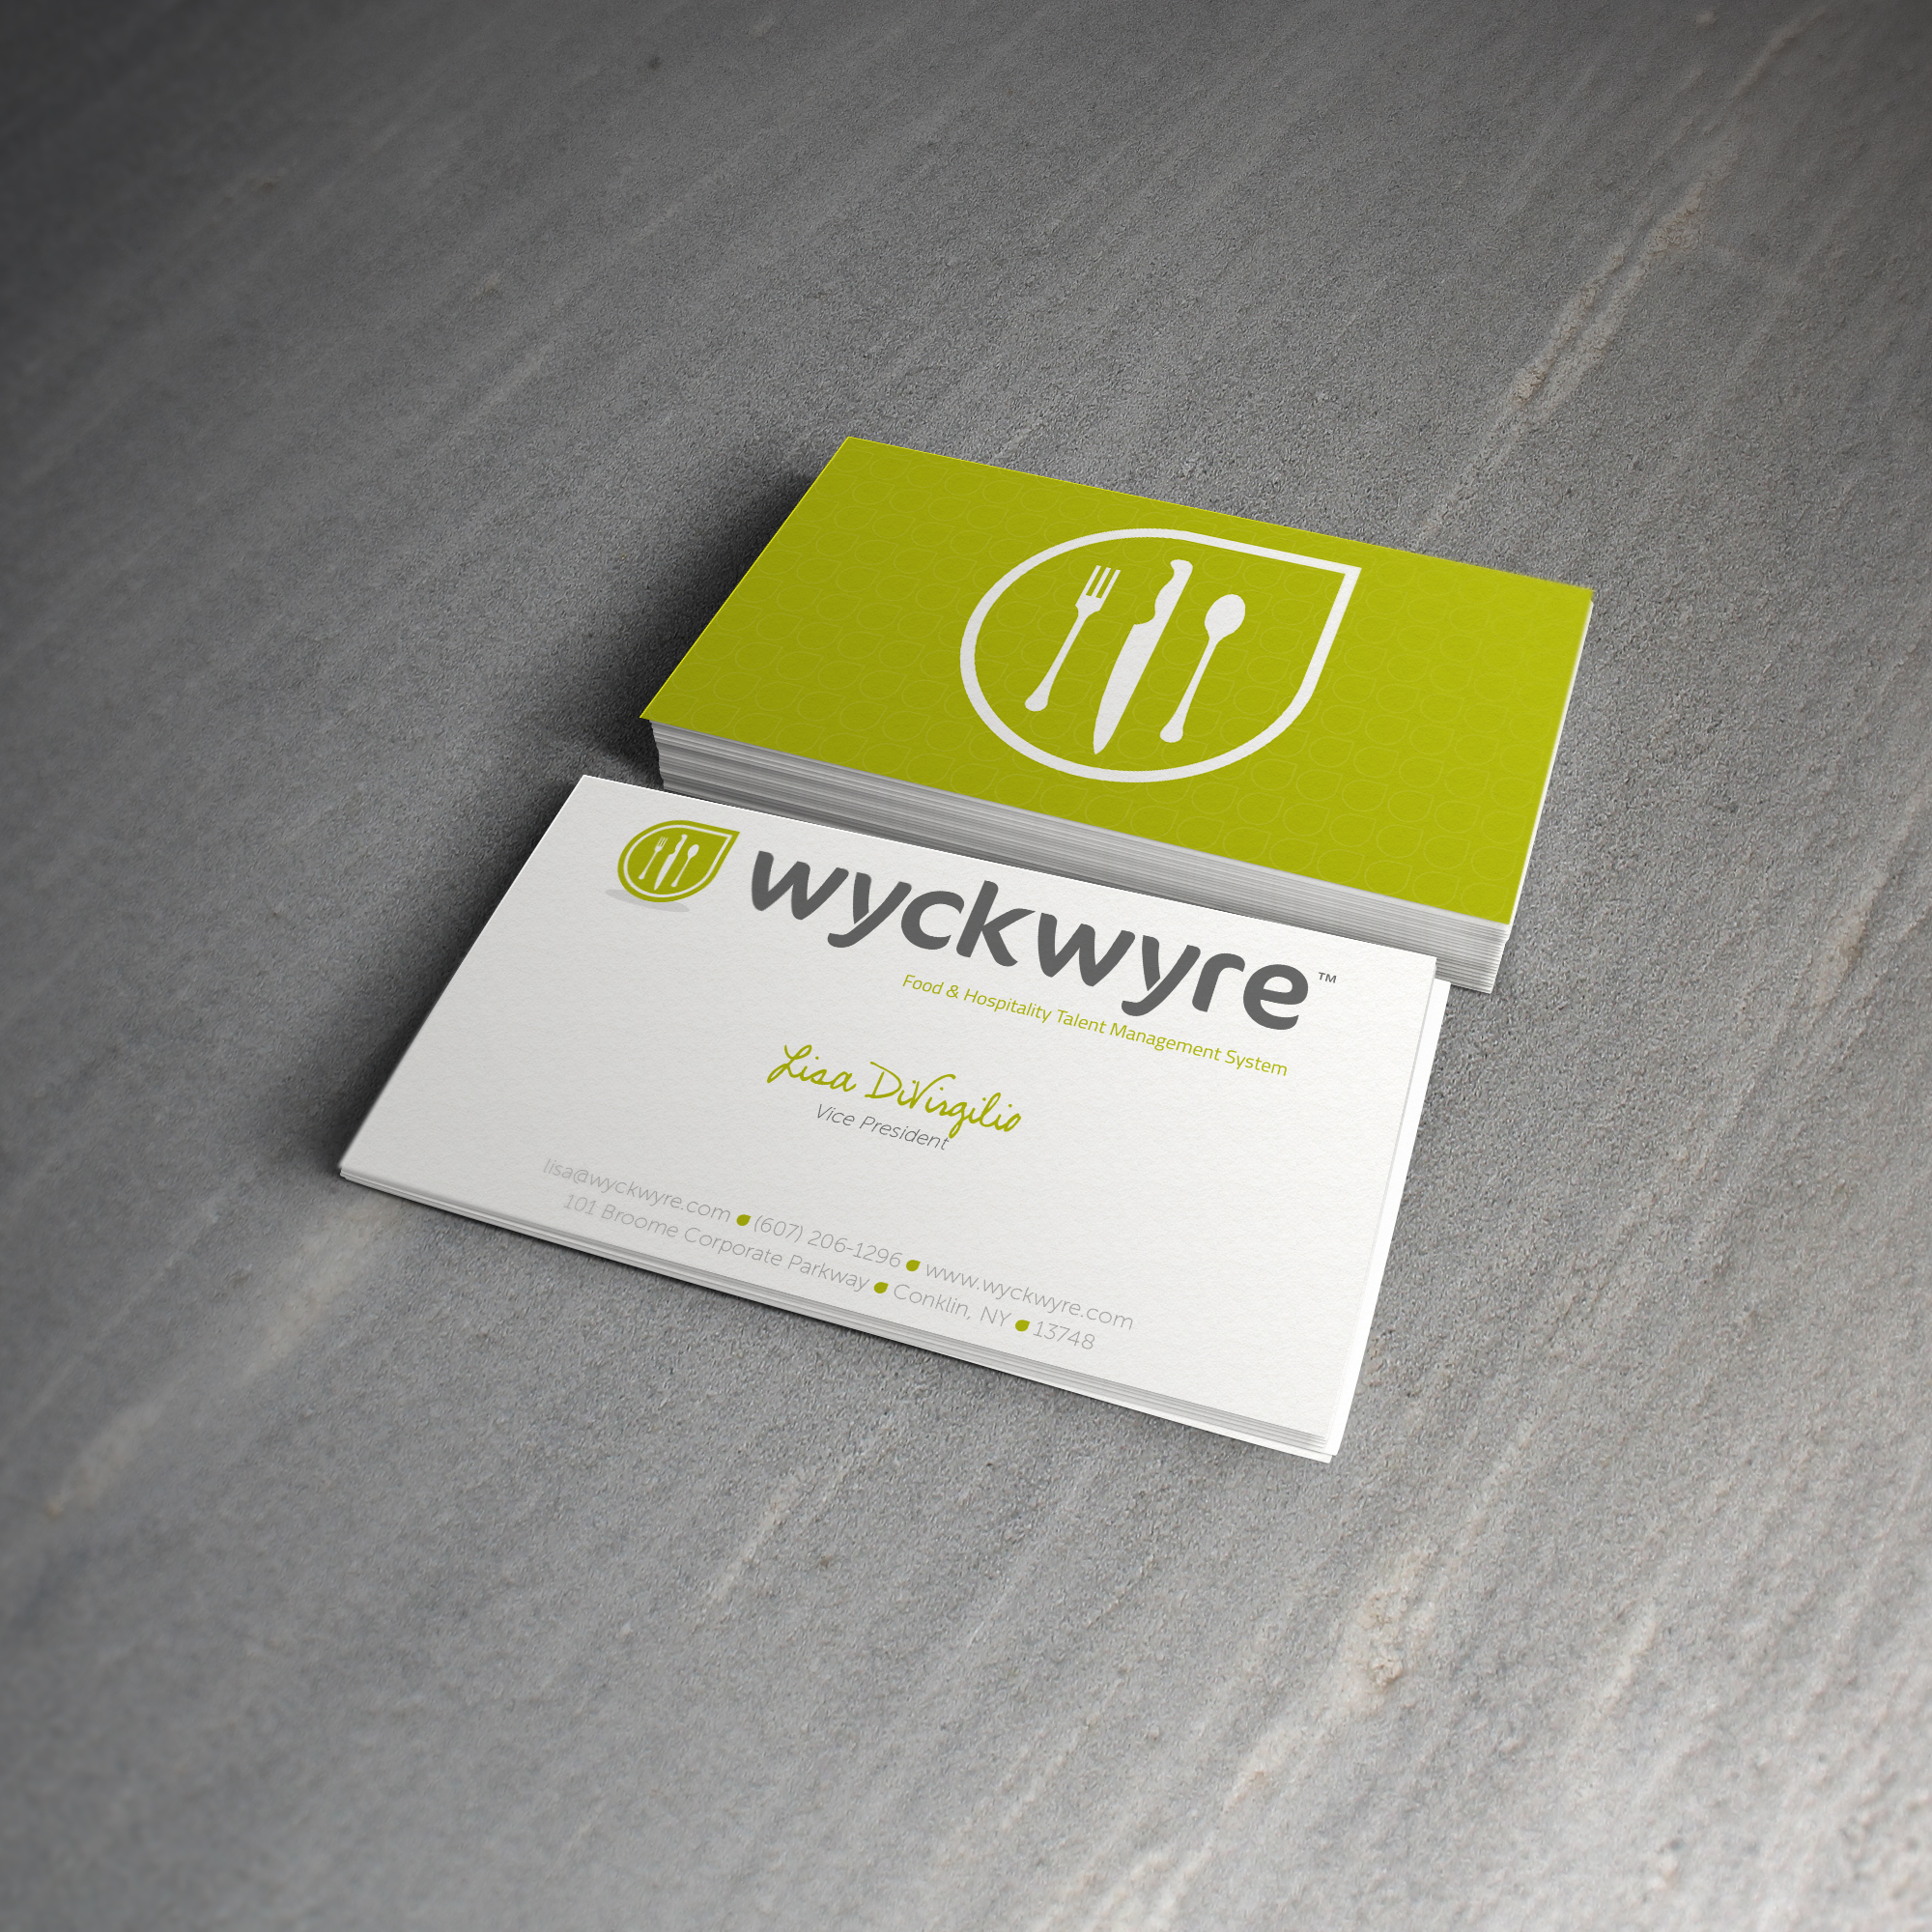 Beautiful photos of business cards buffalo ny business cards and design with depth greater binghamton digital marketing agency design with depth greater binghamton digital marketing agency from business cards buffalo ny magicingreecefo Choice Image